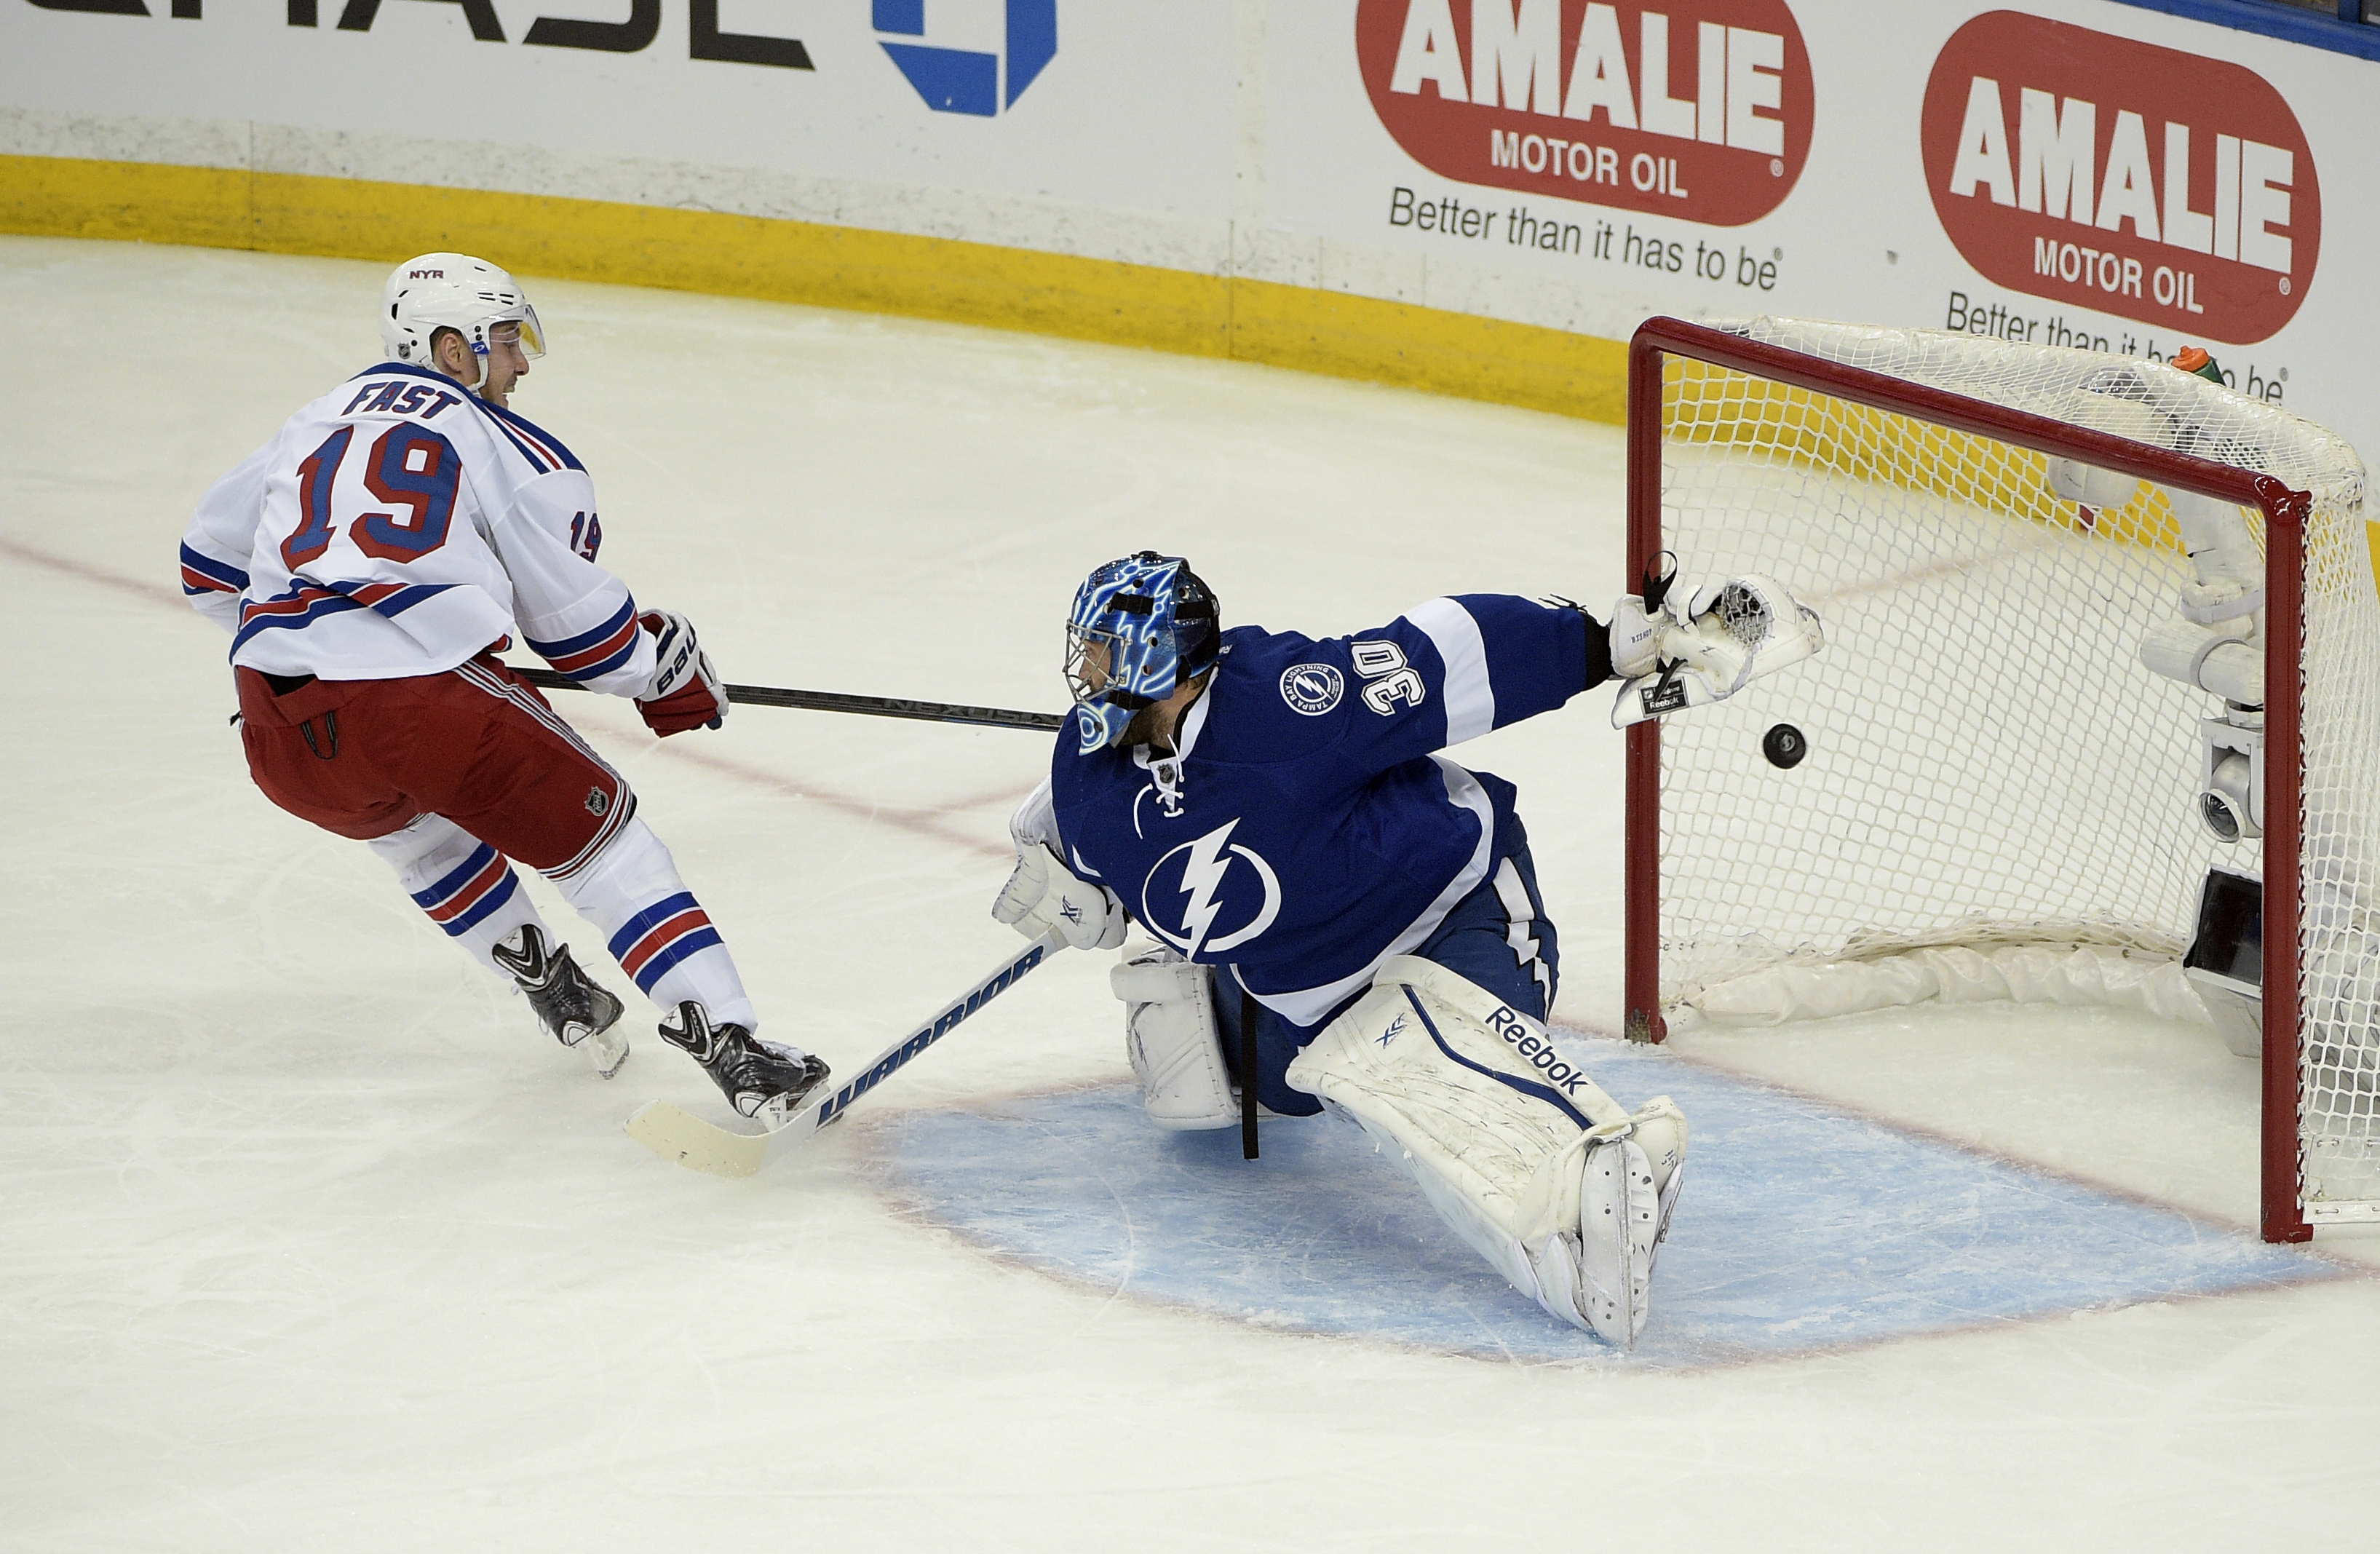 New York Rangers right wing Jesper Fast (19), of Sweden, watches his goal against Tampa Bay Lightning goalie Ben Bishop (30) during the first period of Game 3 of the Eastern Conference finals of th NHL hockey Stanley Cup playoffs, Wednesday, May 20, 2015,